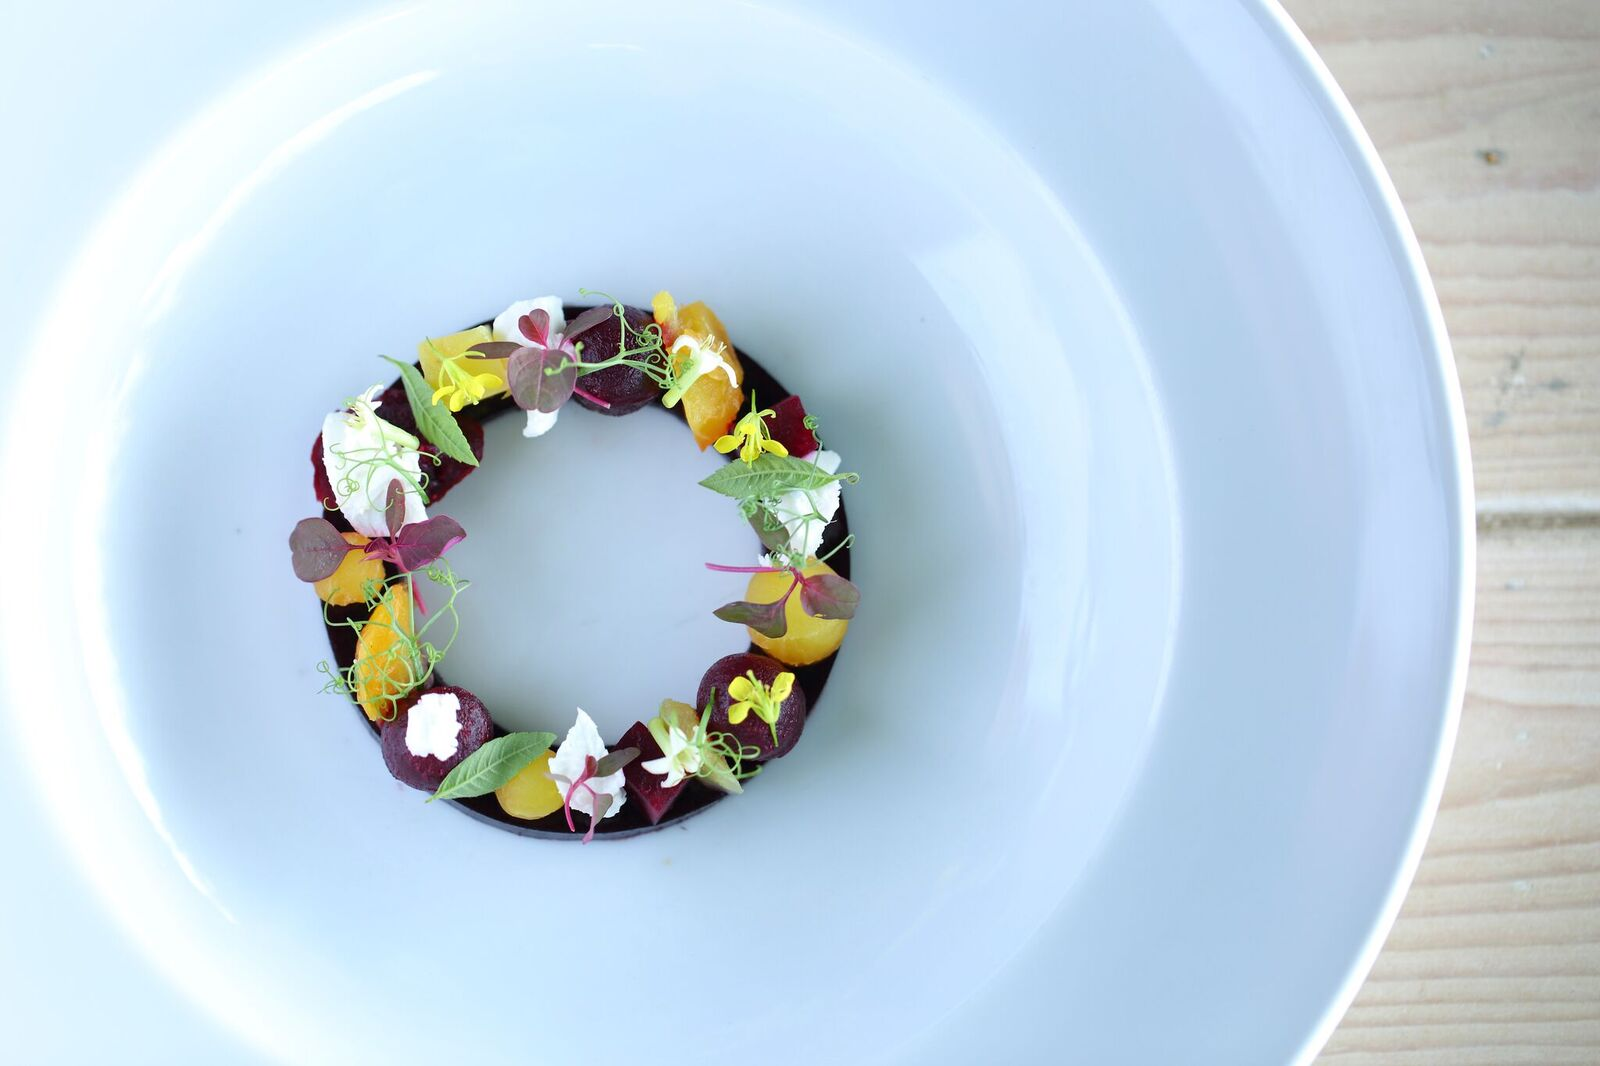 Tasting of Beetroot and Goats Cheese